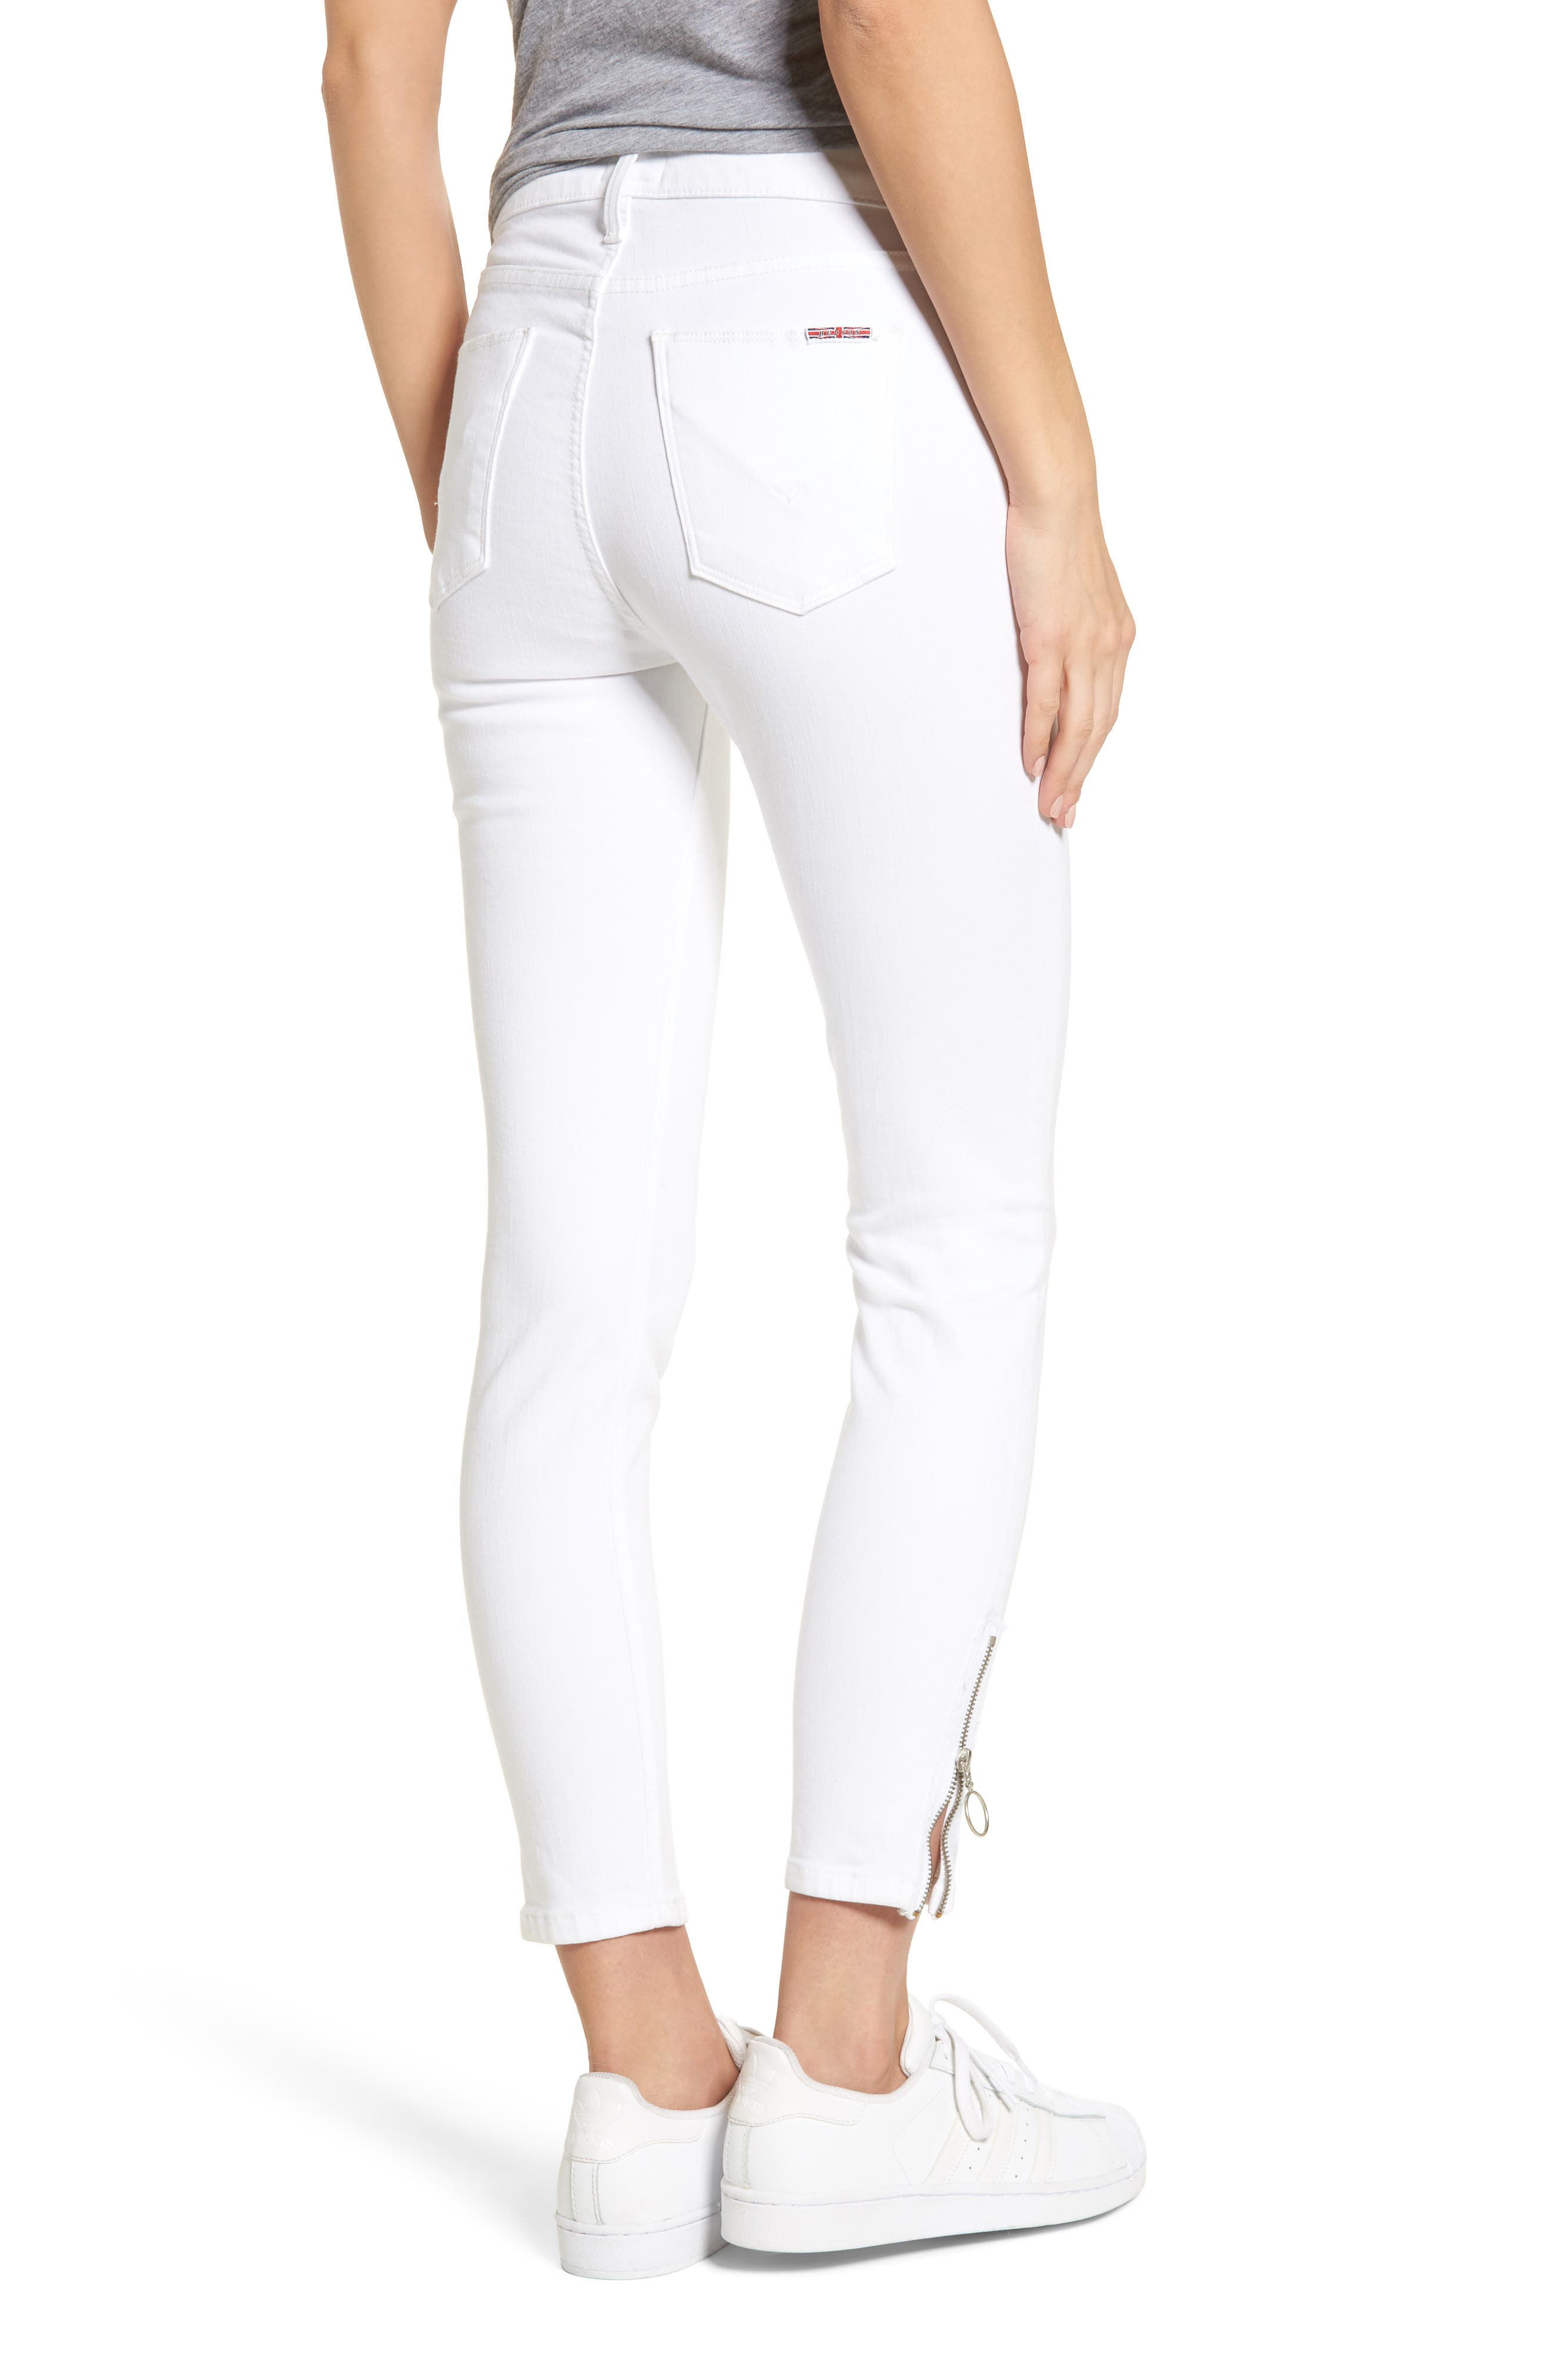 Barbara High Waist Ankle Skinny Jeans,                             Alternate thumbnail 2, color,                             Optical White